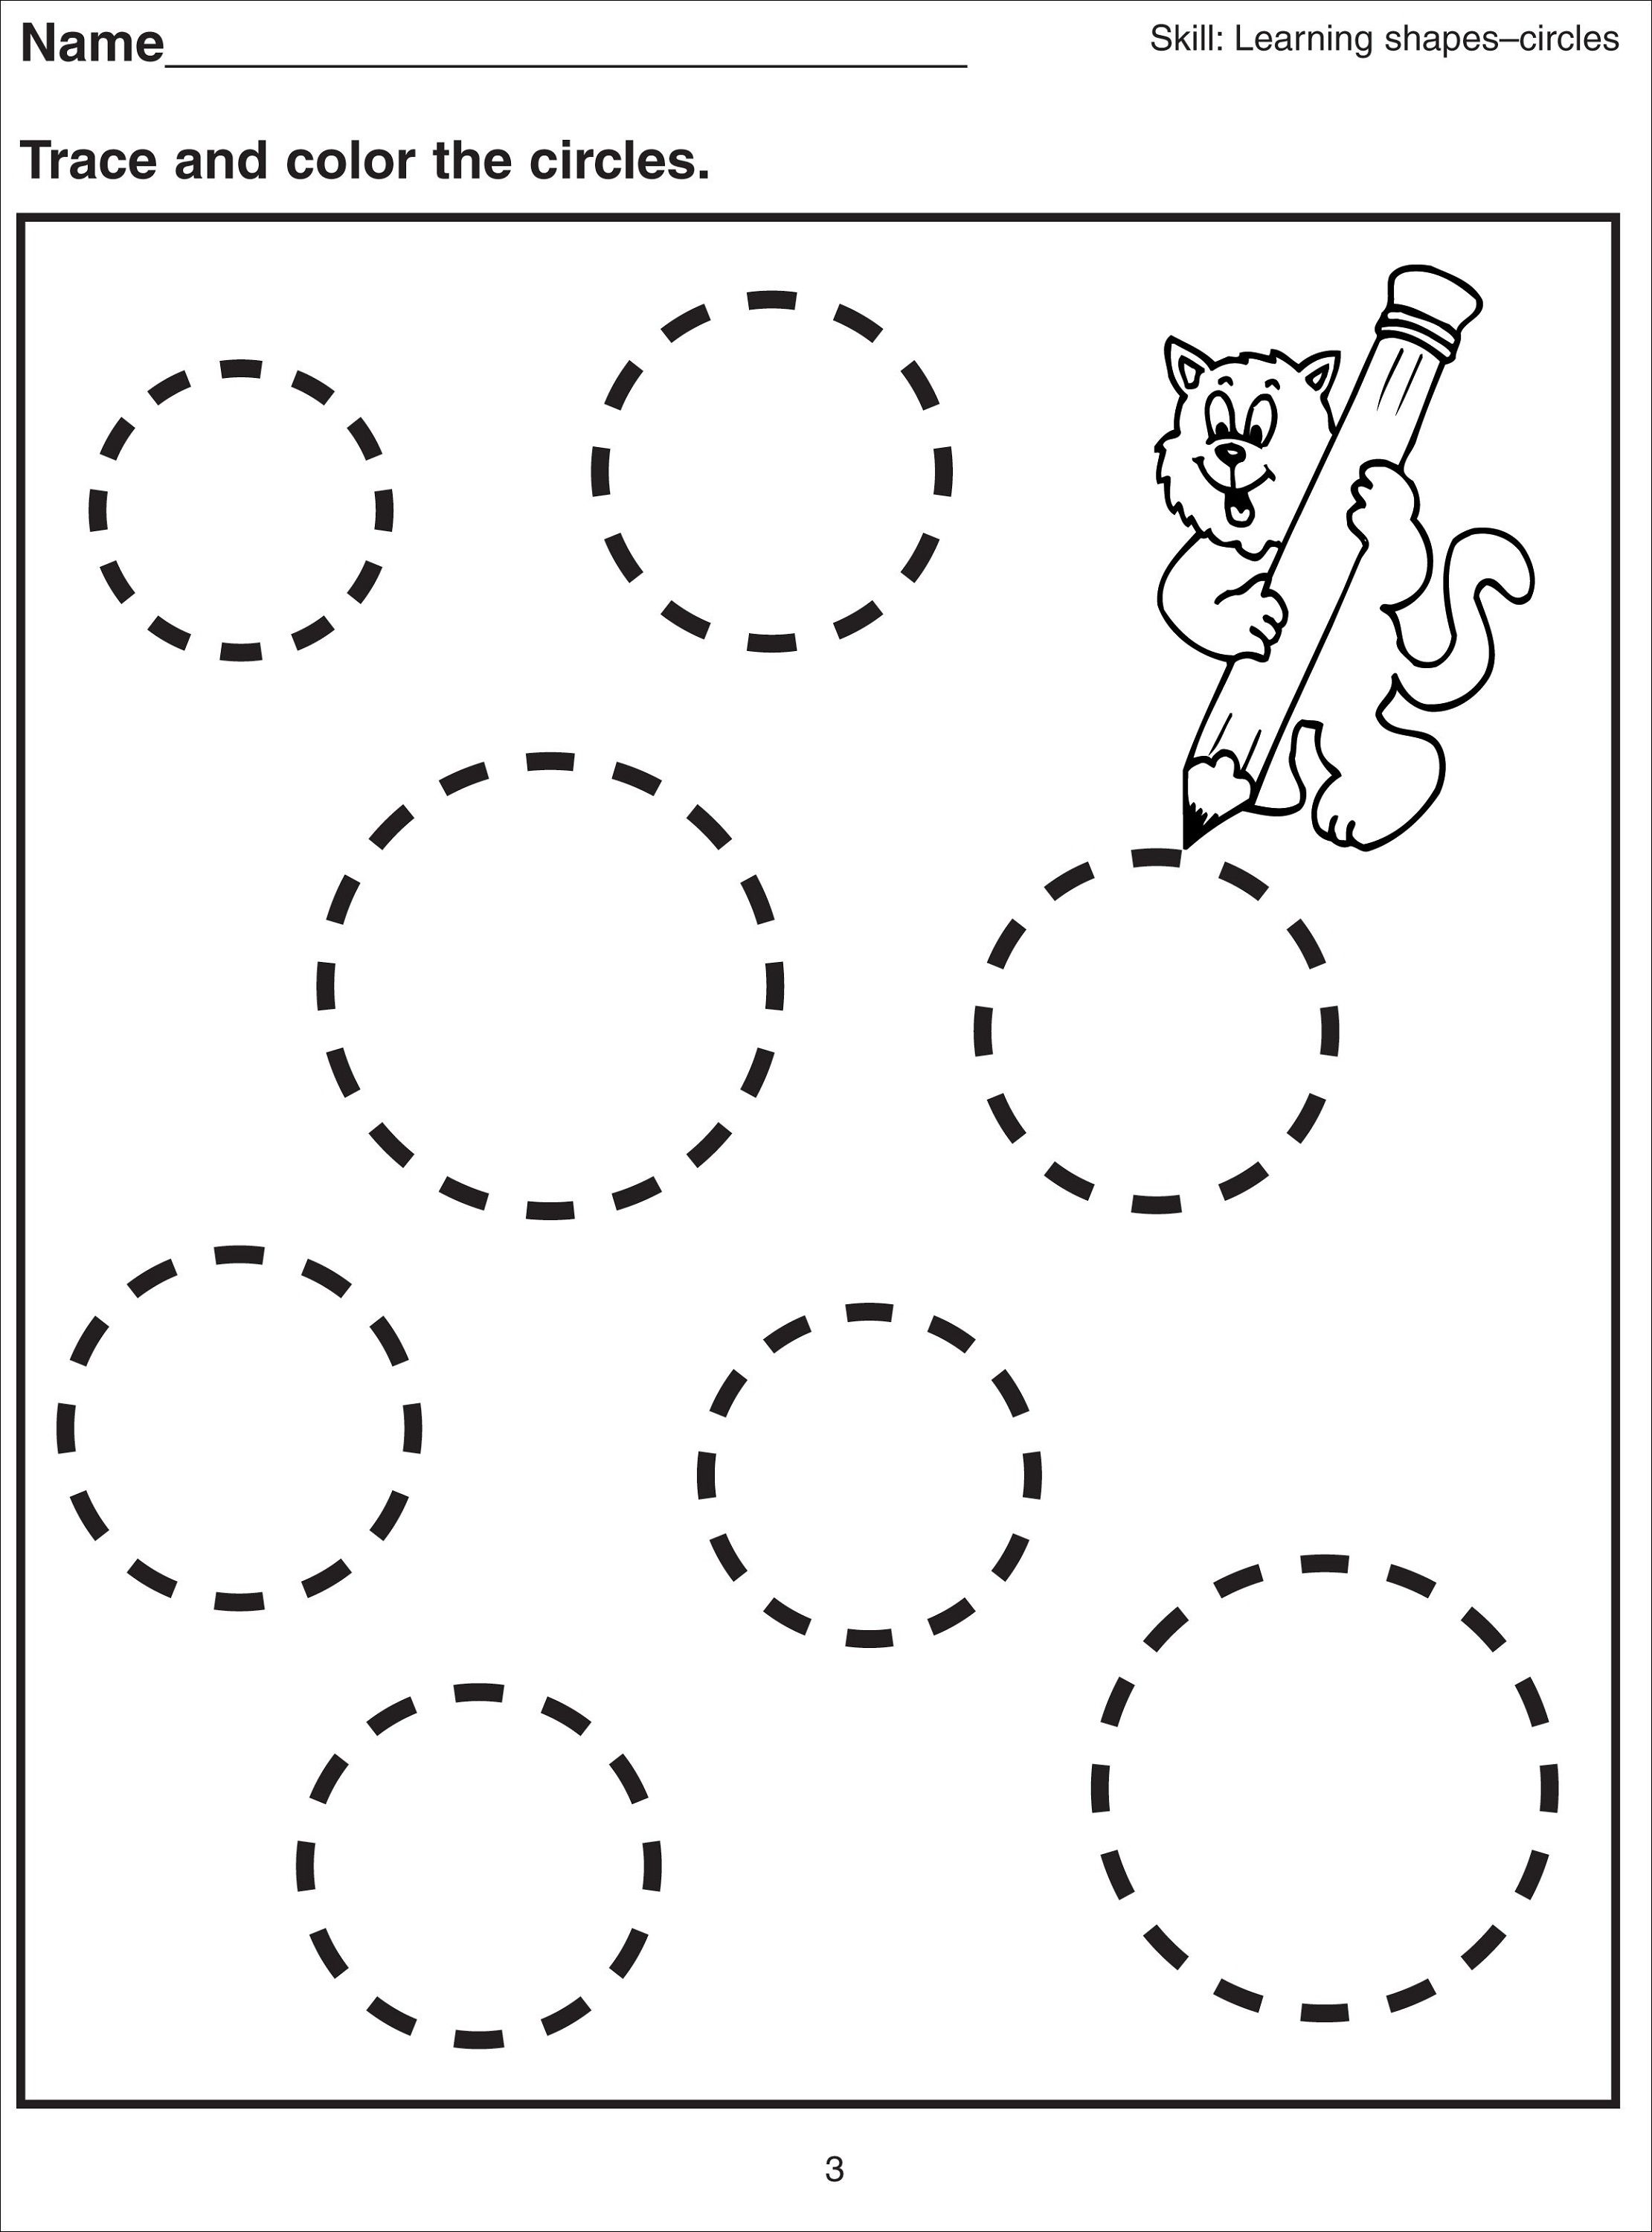 Basic Shapes Worksheets For Kids